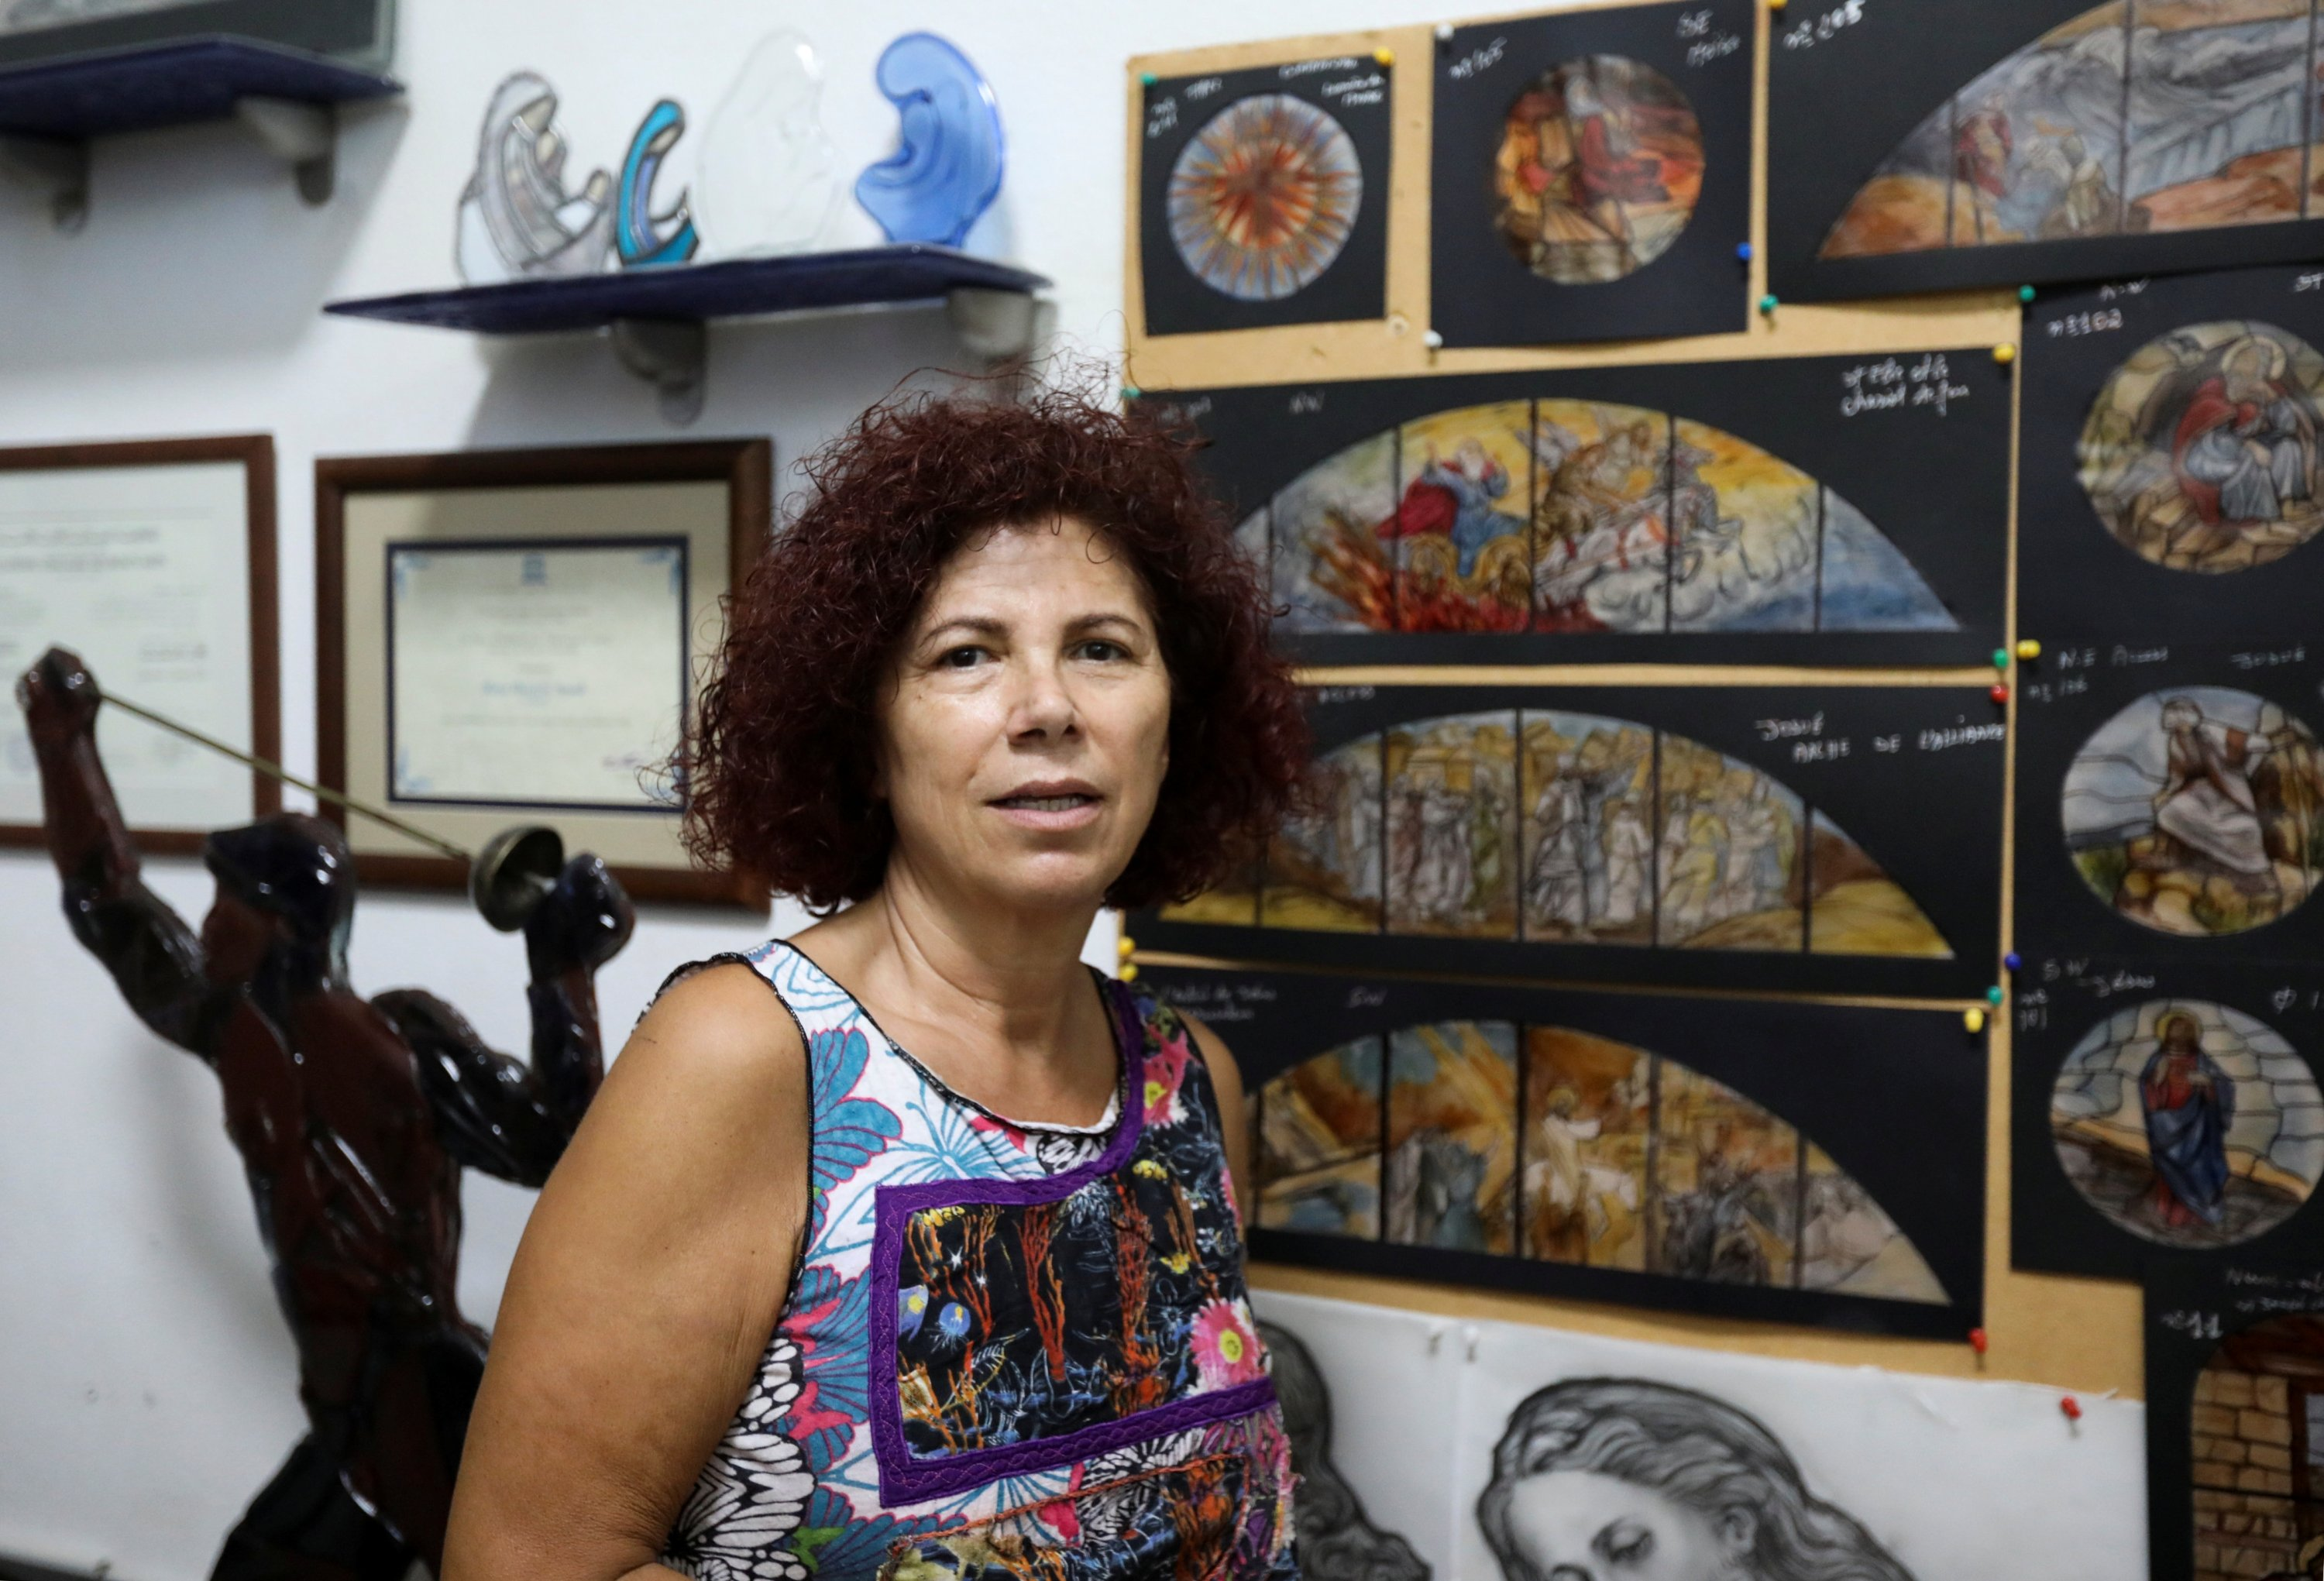 Stained glass maker Maya Husseini poses inside her workshop in Hazmiyeh, Lebanon on Aug. 13, 2020. (Reuters Photo)